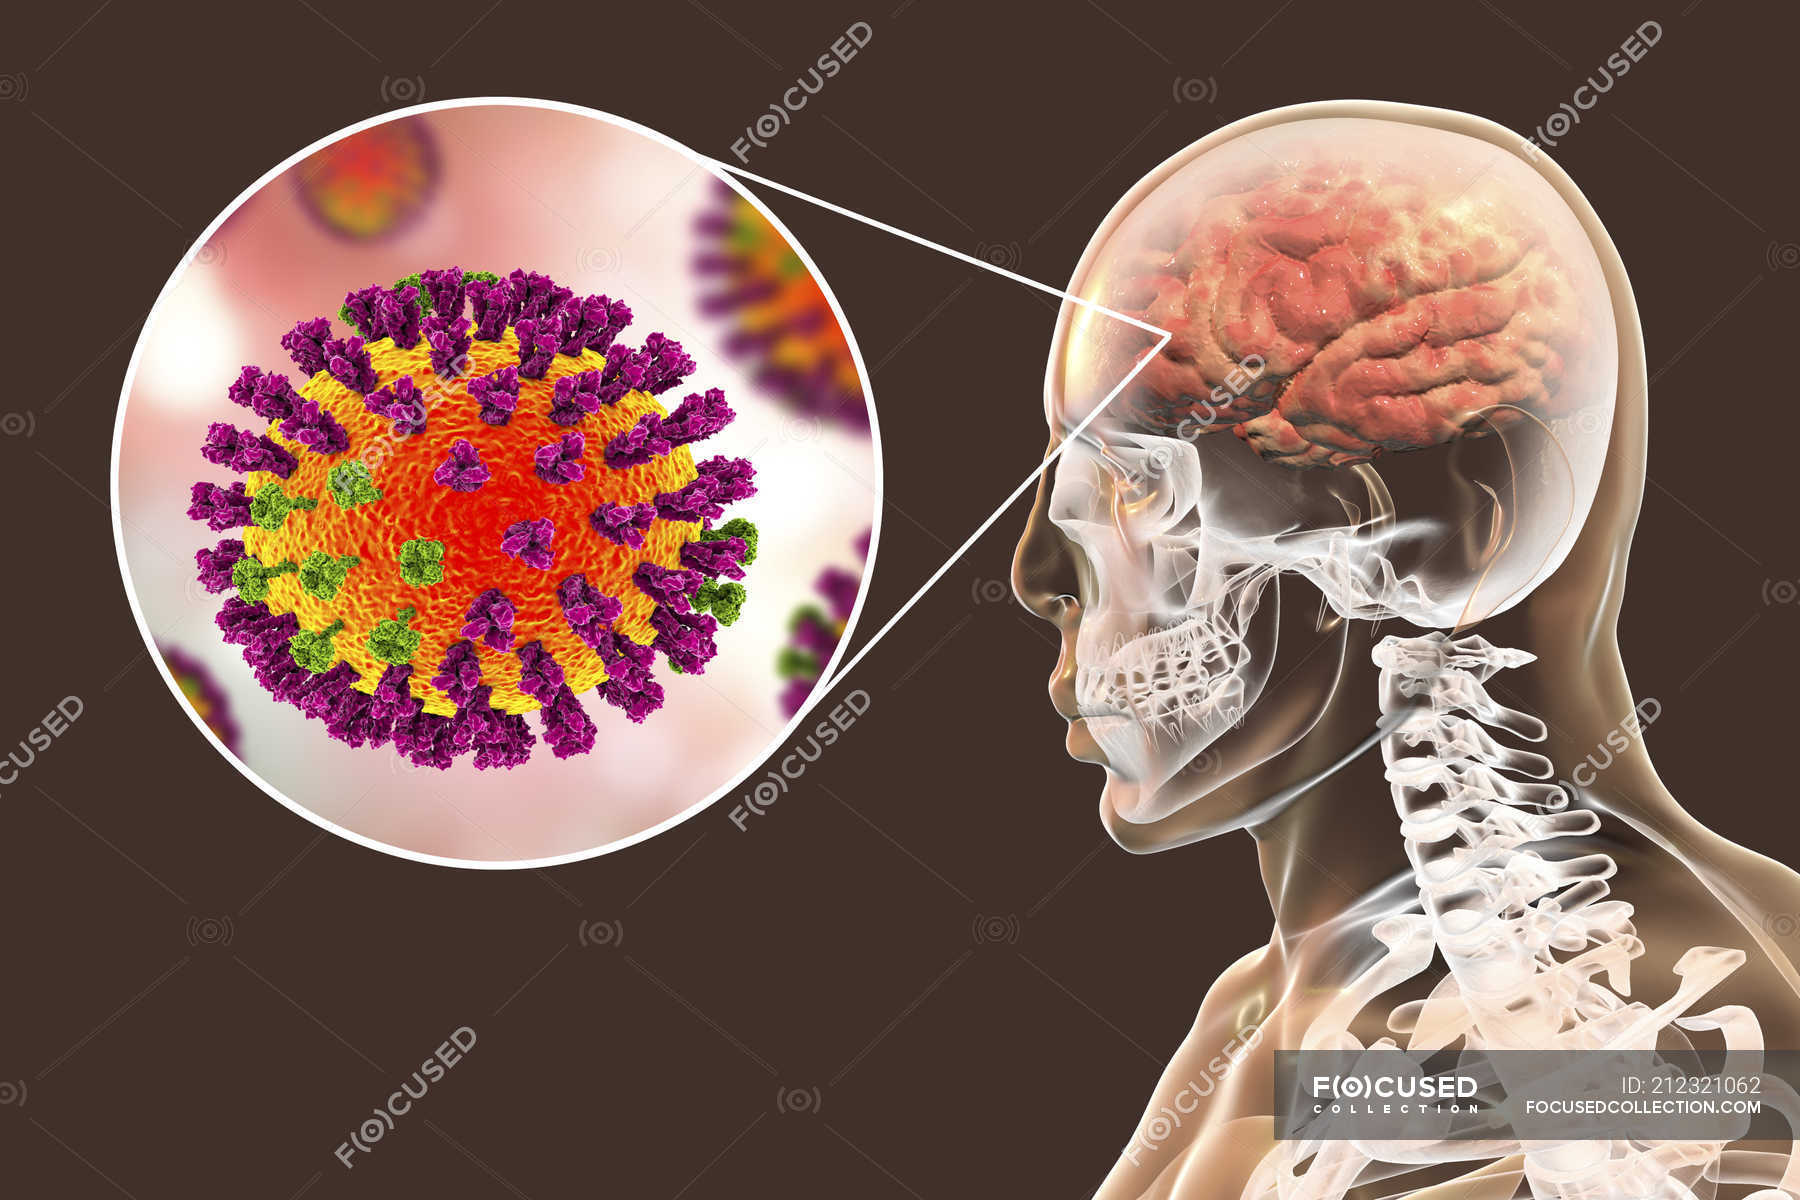 hight resolution of digital illustration of complication of flu infection such as encephalitis and close up of virus particle stock photos